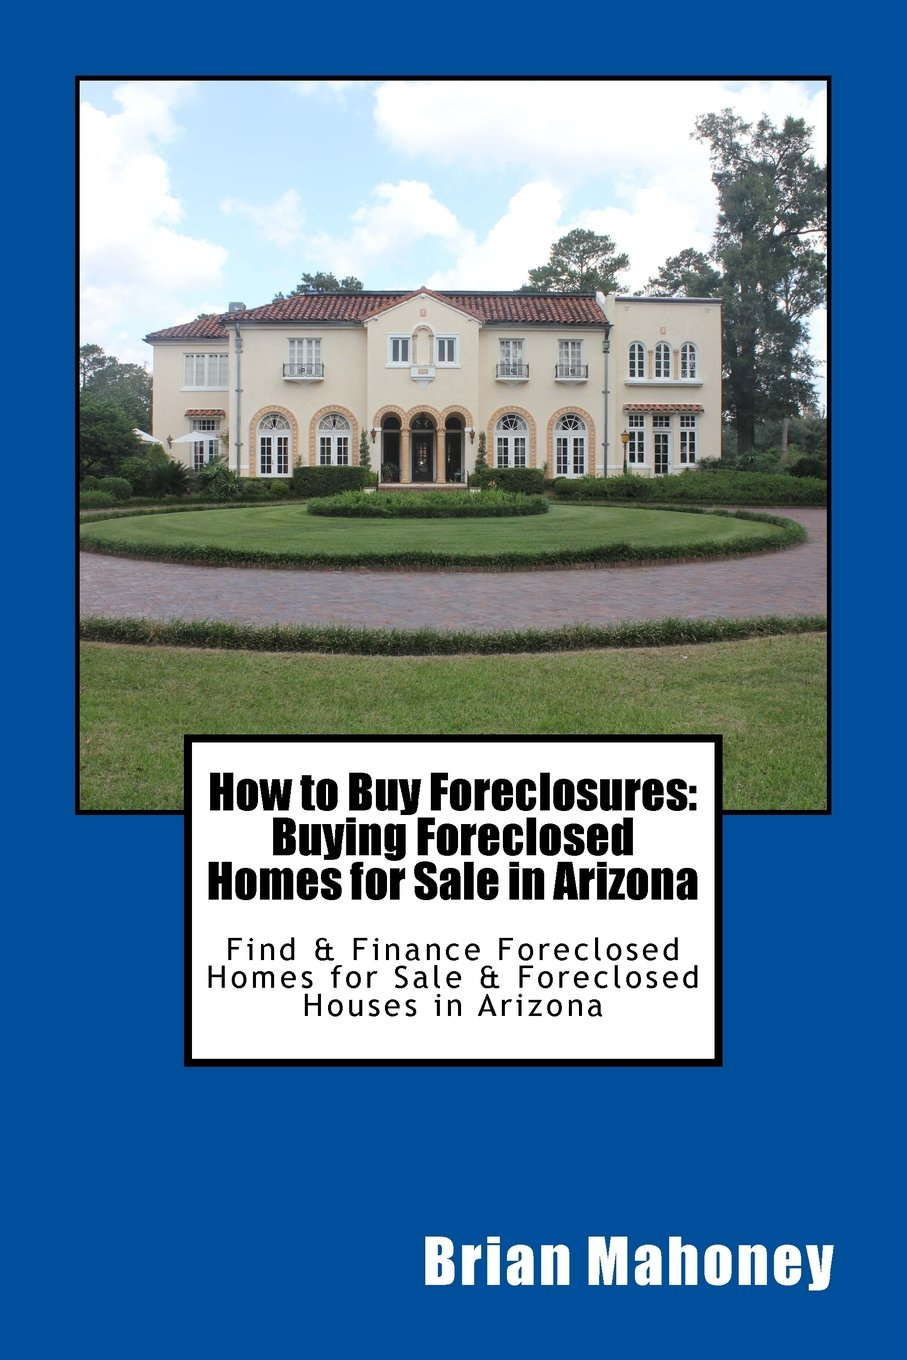 How to Buy Foreclosures: Buying Foreclosed Homes for Sale in Arizona: Find & Finance Foreclosed Homes for Sale & Foreclosed Houses in Arizona PDF ePub fb2 book